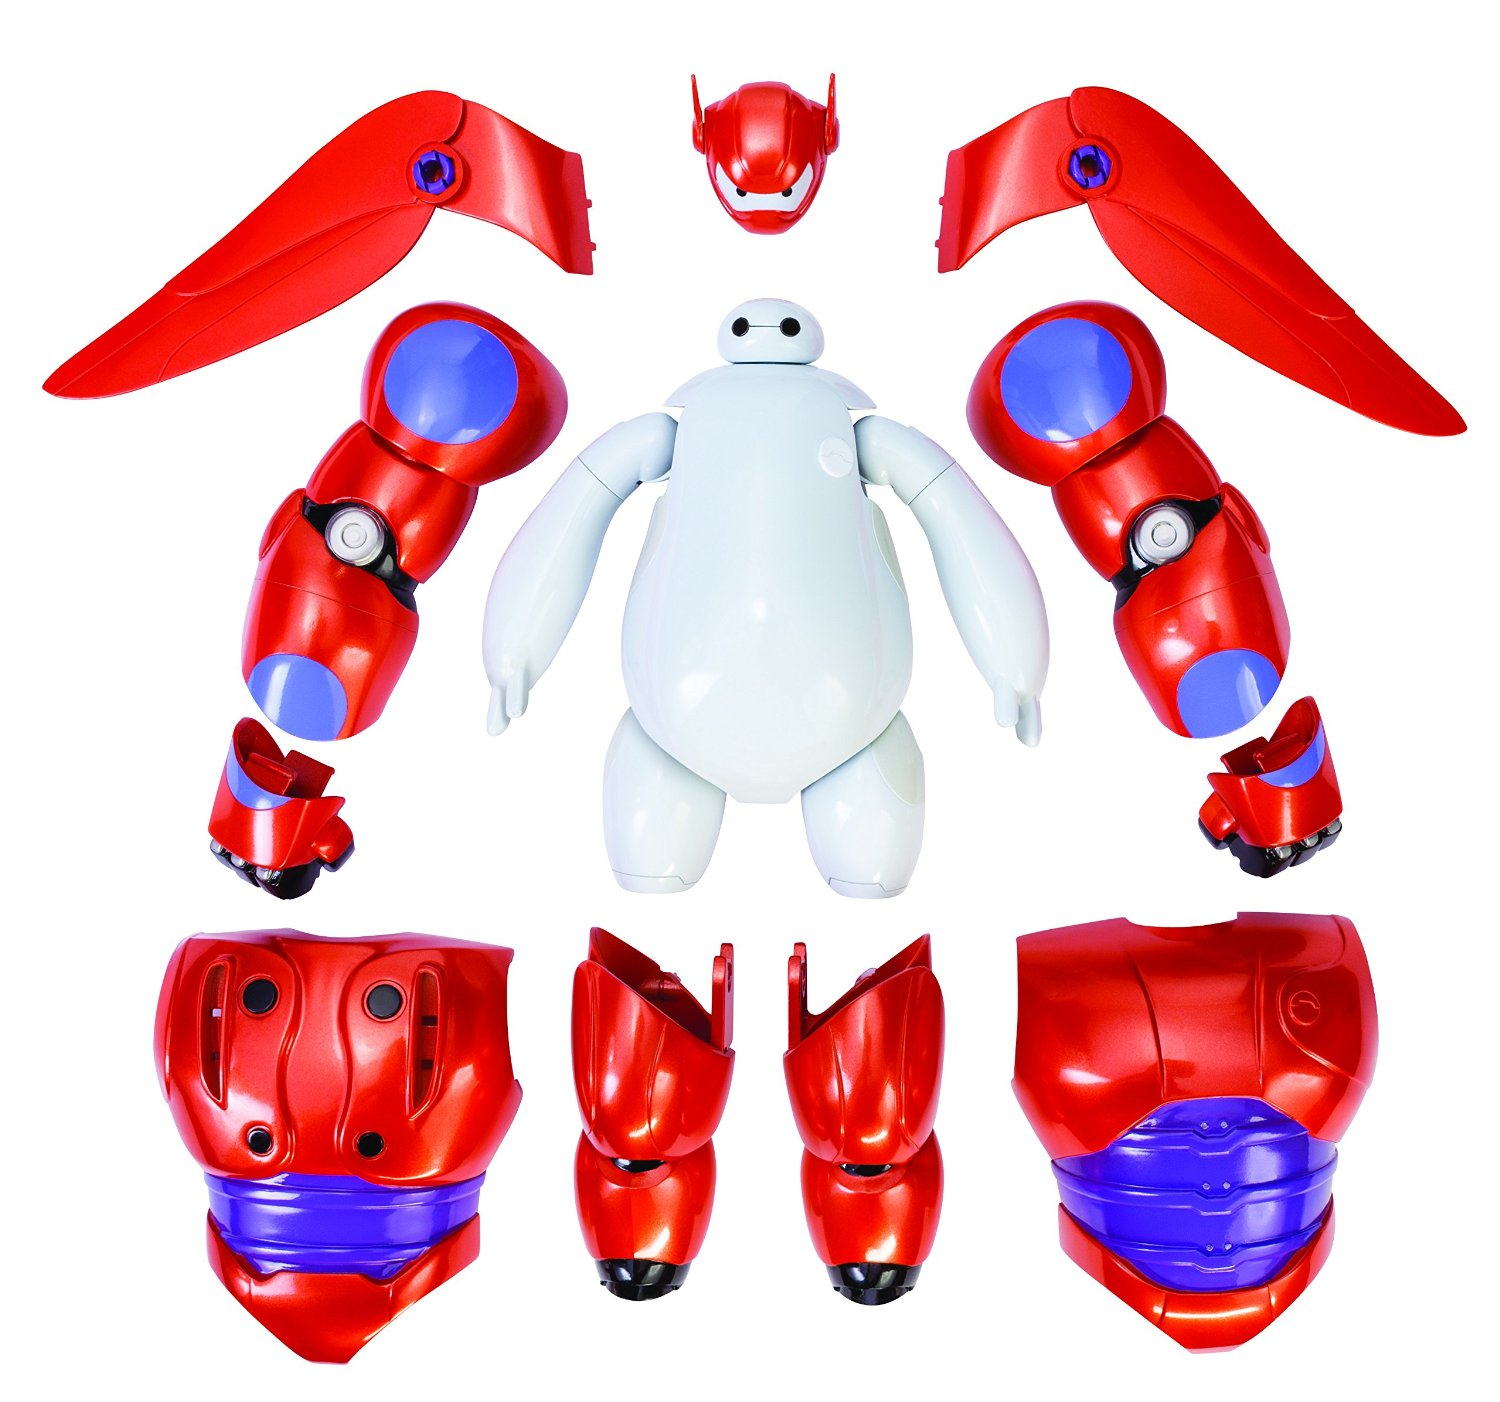 Ghép hình robot Baymax - Big Hero 6 Armor-Up Baymax Action Figure